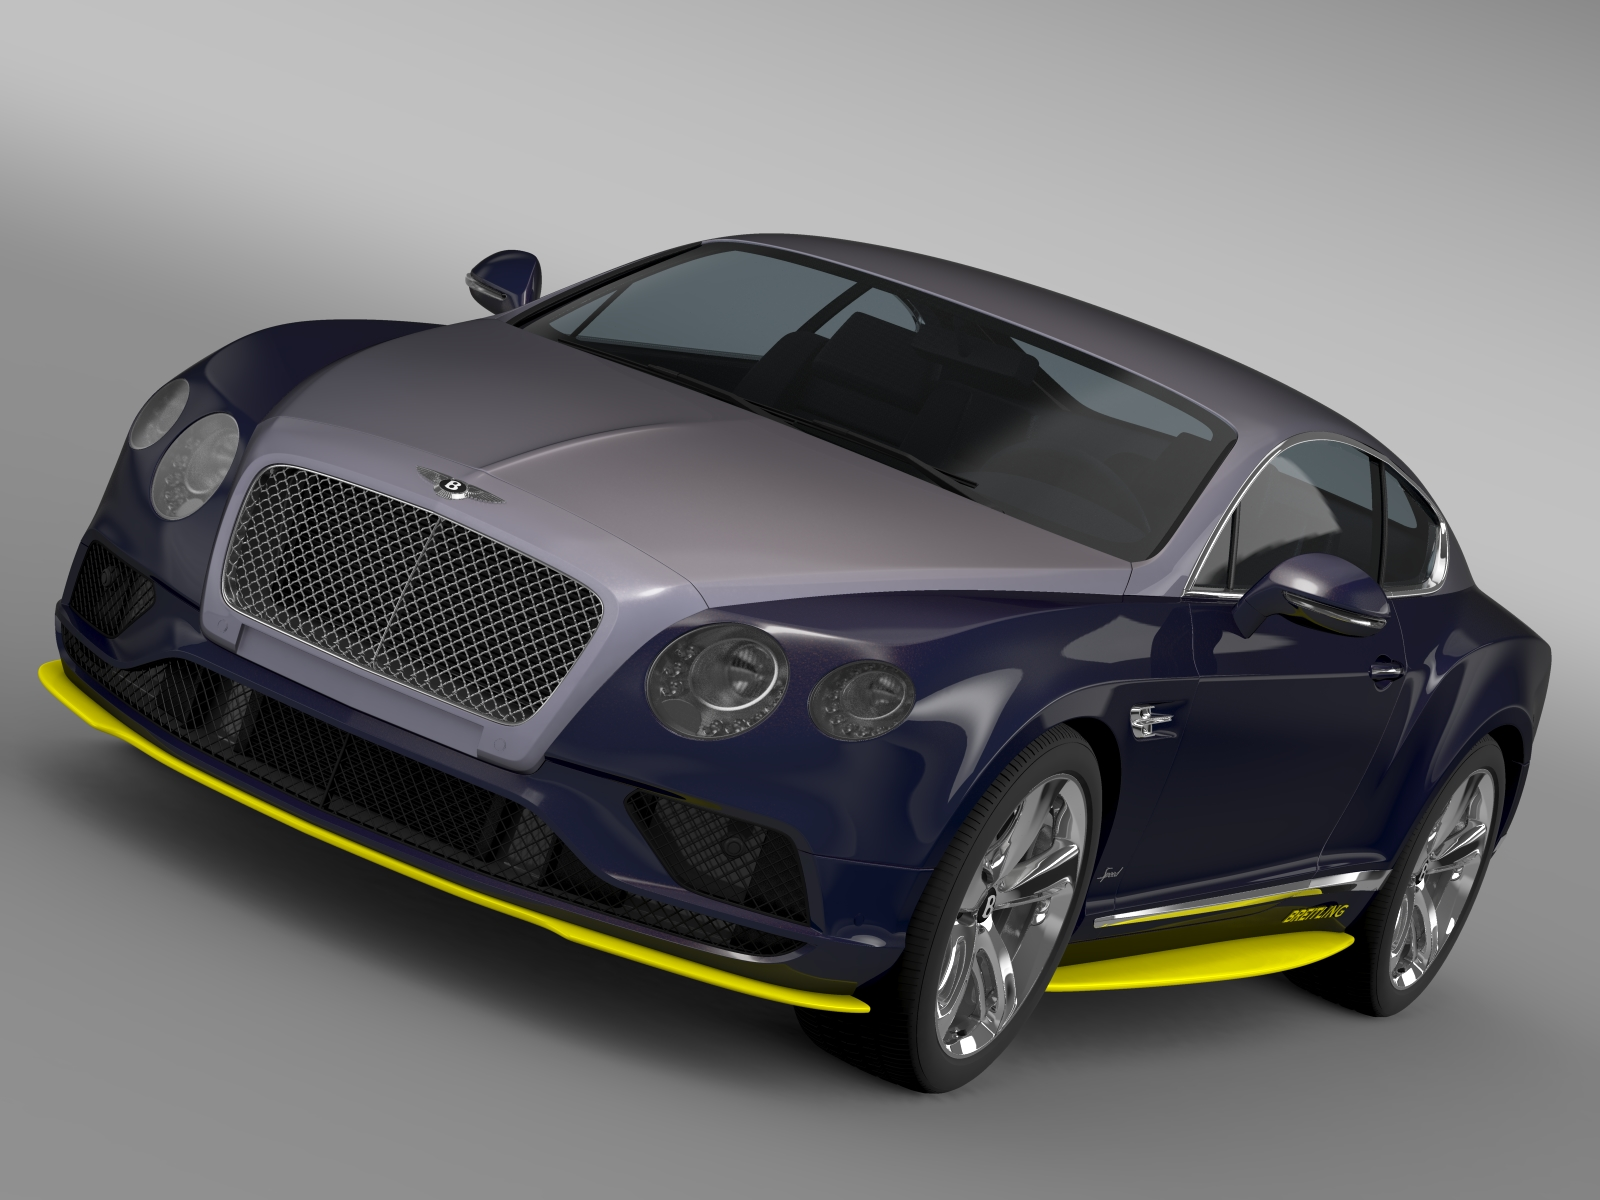 bentley continental gt speed breitling jet team se 3d model 3ds max fbx c4d lwo ma mb hrc xsi obj 212092